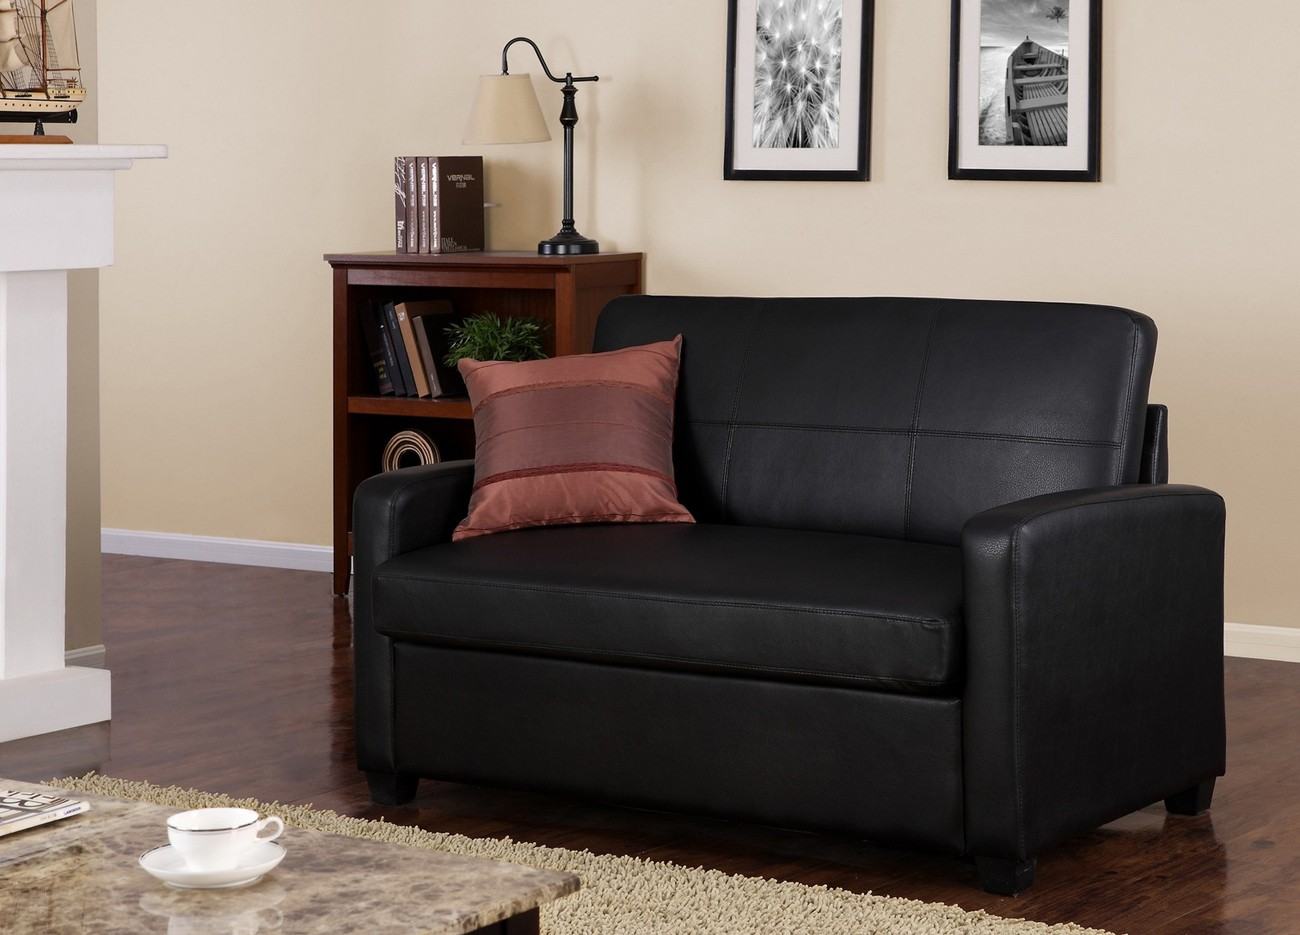 Beau Sofa Black Single Sleeper Chair With Pillow